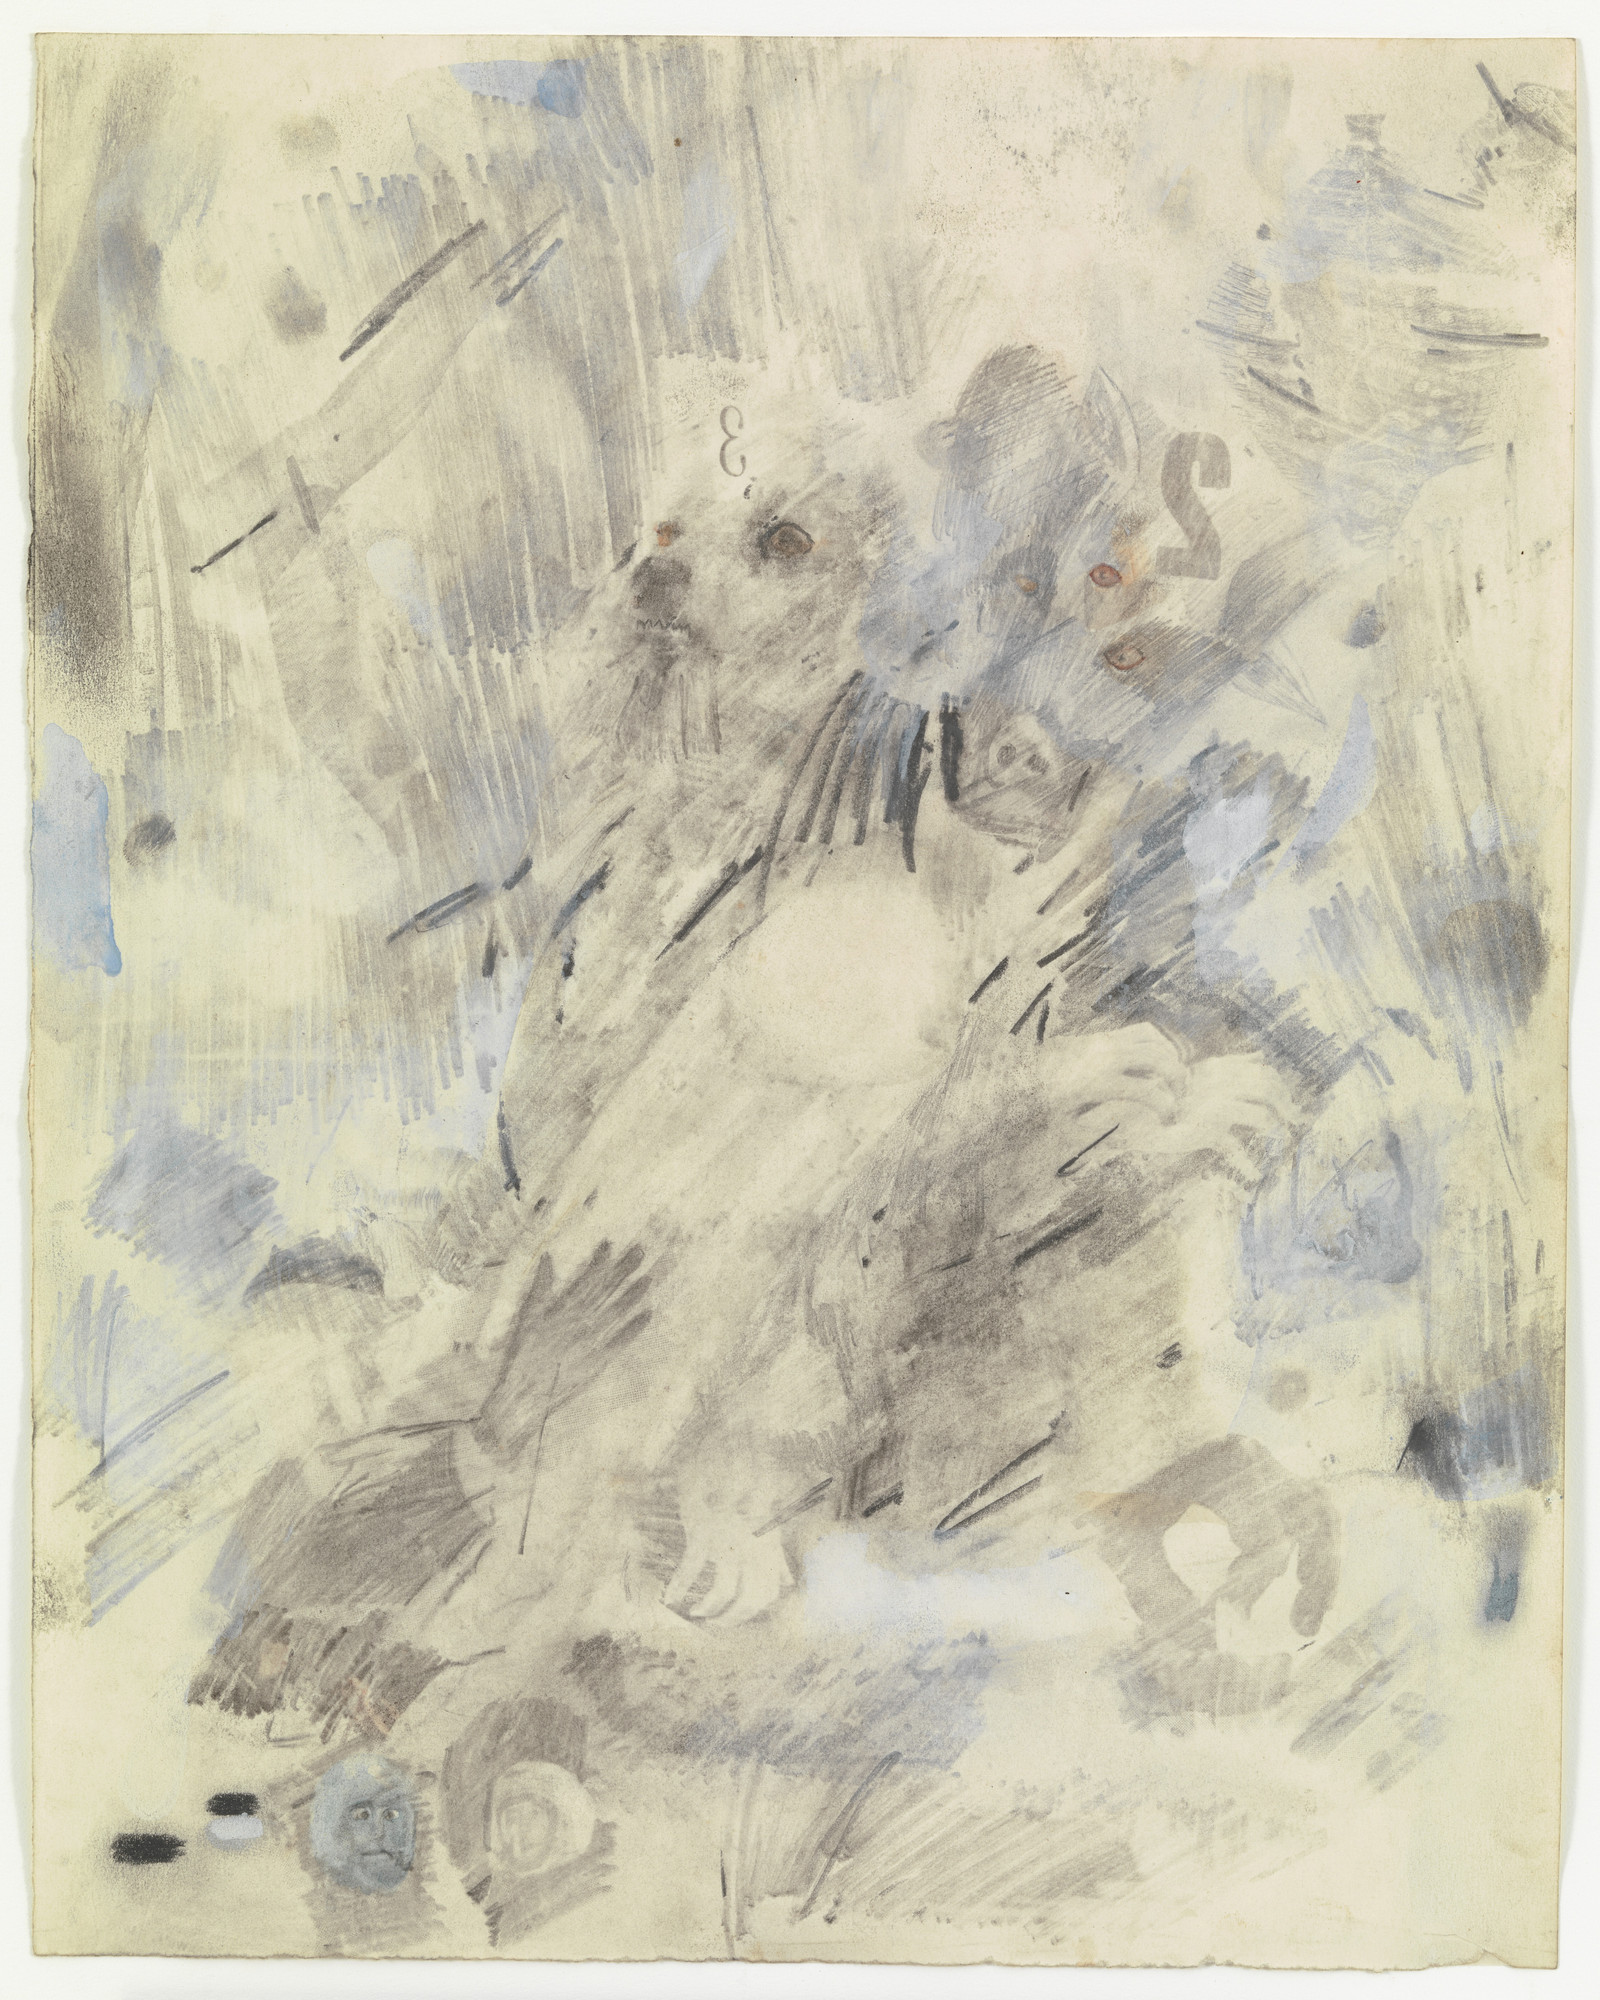 Robert Rauschenberg. Canto VI: Circle Three, The Gluttons from the series Thirty-Four Illustrations for Dante's Inferno. (1958)